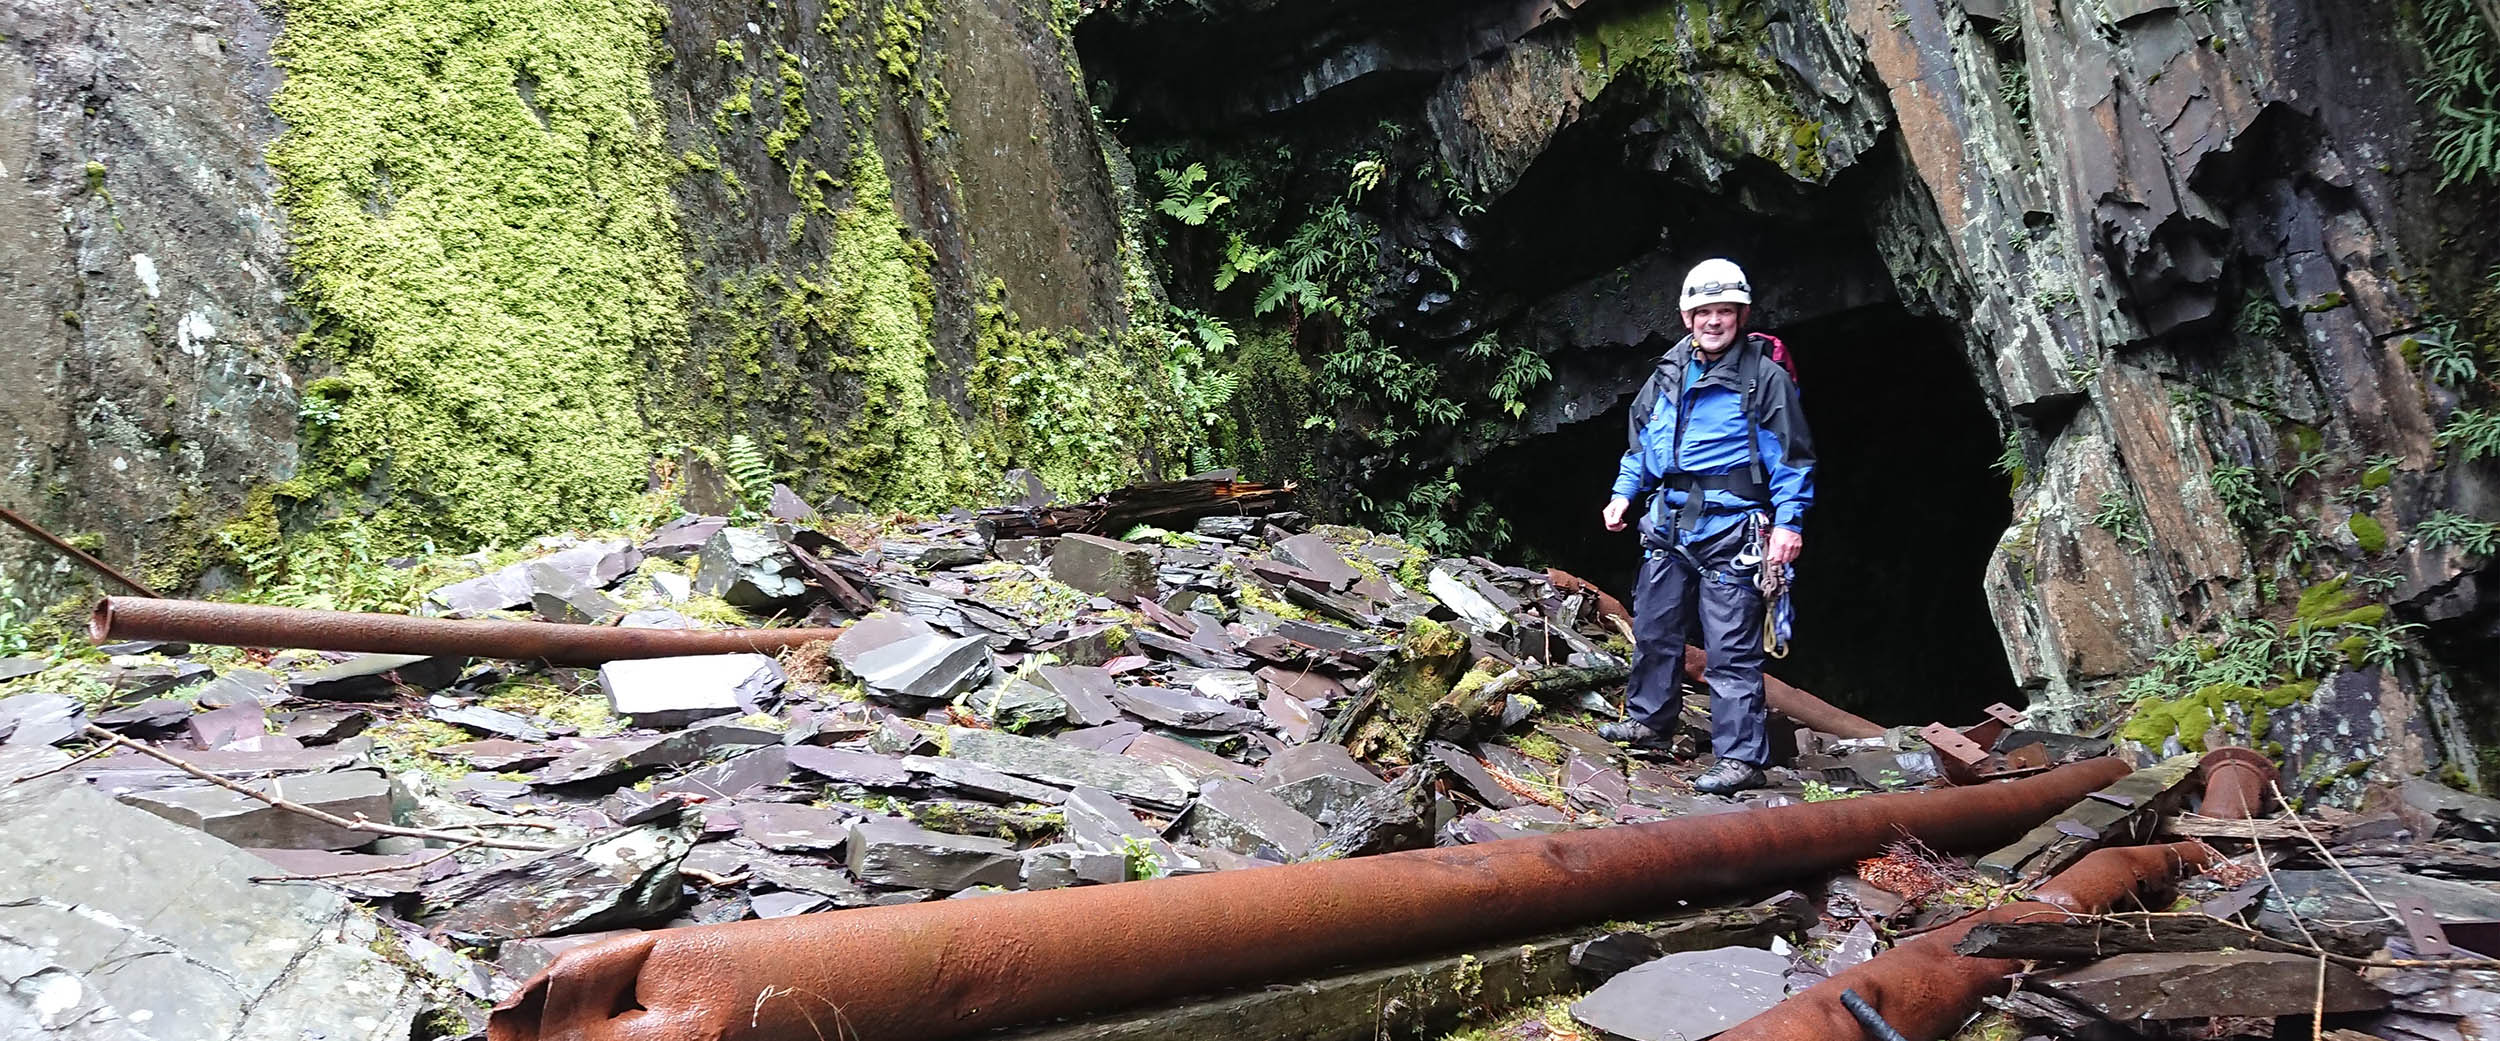 A mountaineer emerges from an old mine. The area is covered in moss and remnants of an old industrial age